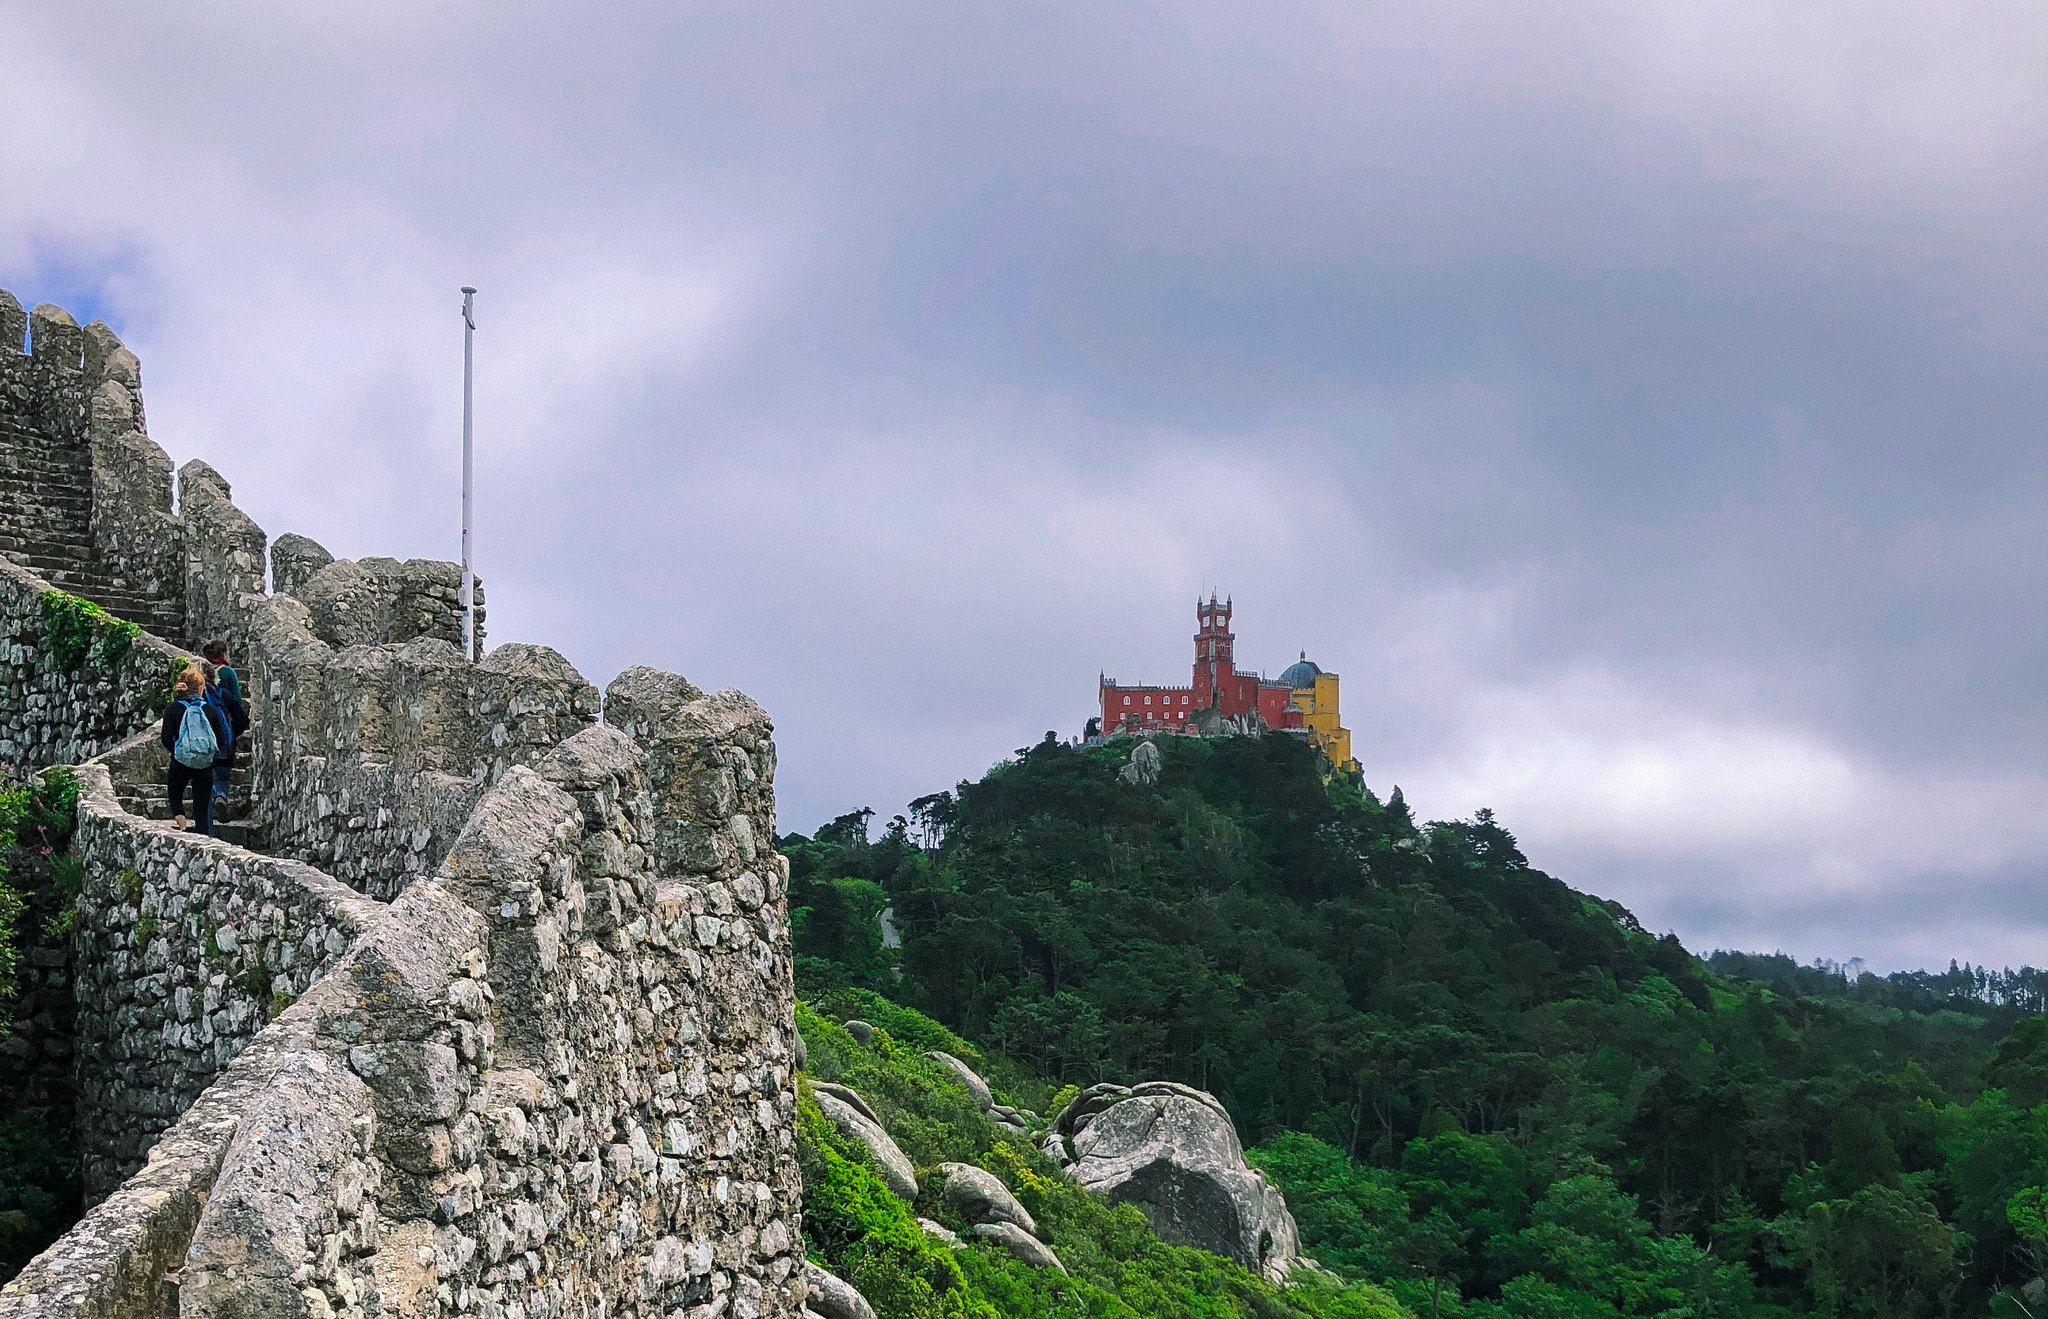 The Ultimate Self Guided Tour of Moorish Castle, Sintra's Oldest World Heritage Site